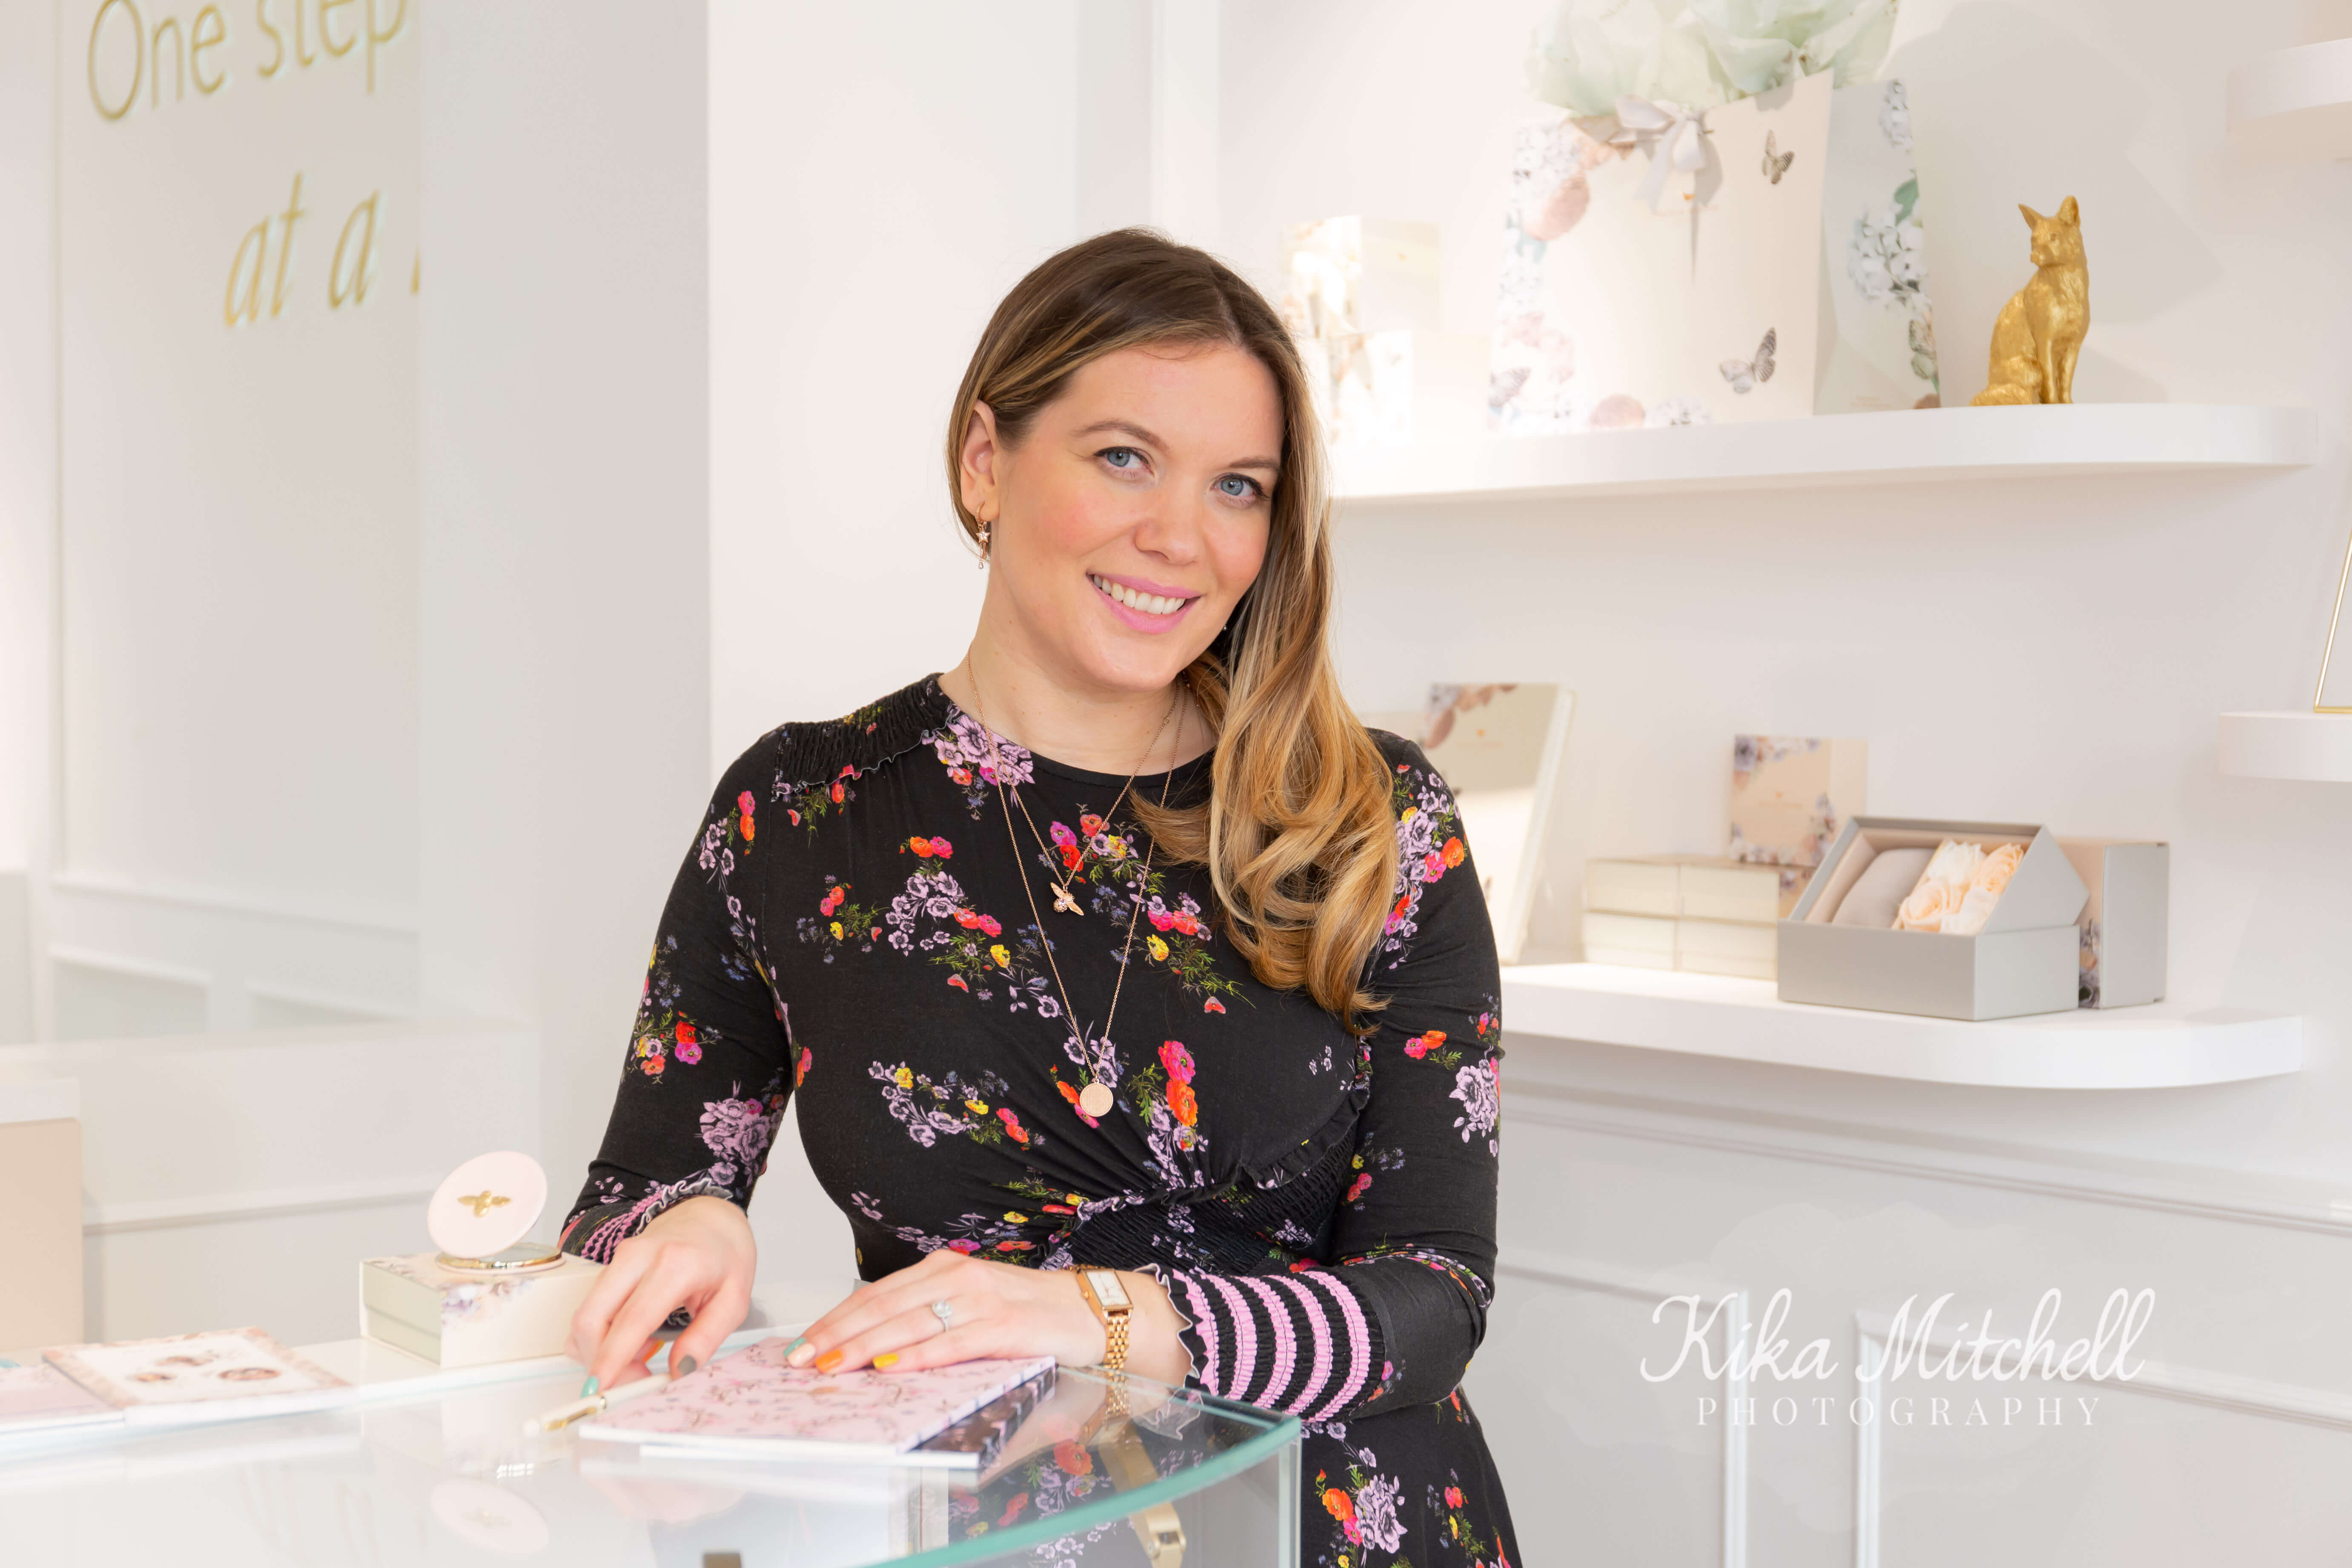 Jemma Fennings Olivia Burton co founder by till in shop celebrate kindness at Covent Garden boutique photographed by Chelmsford photographer Kika Mitchell Photography